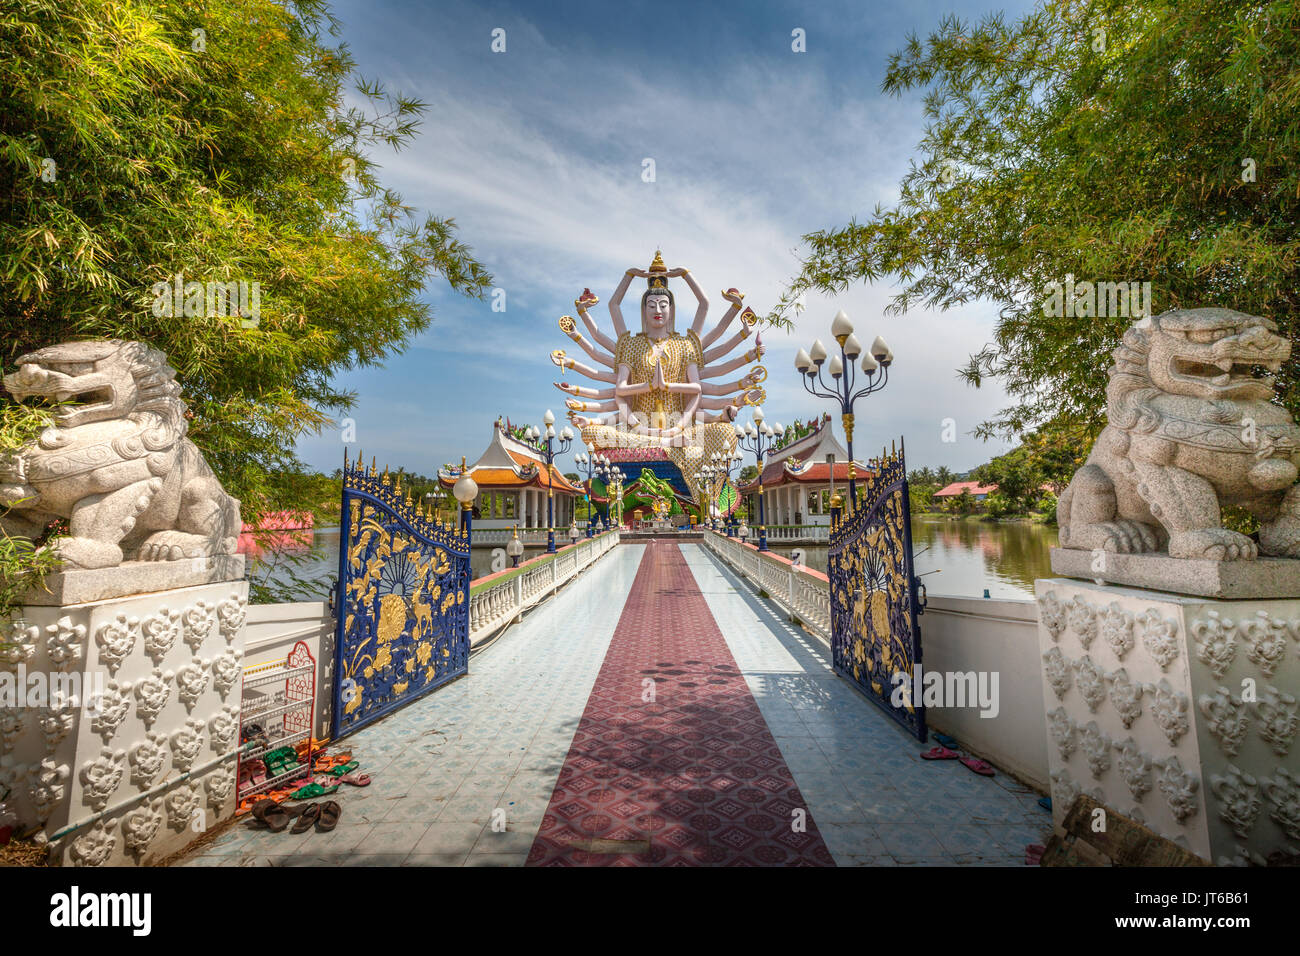 Statue of eighteen arms of Guanyin Avalokiteśvara or Guanjin Kwan Yin, Goddess of Mercy and Compassion, Wat Plai Laem Temple, Koh Samui, Thailand - Stock Image